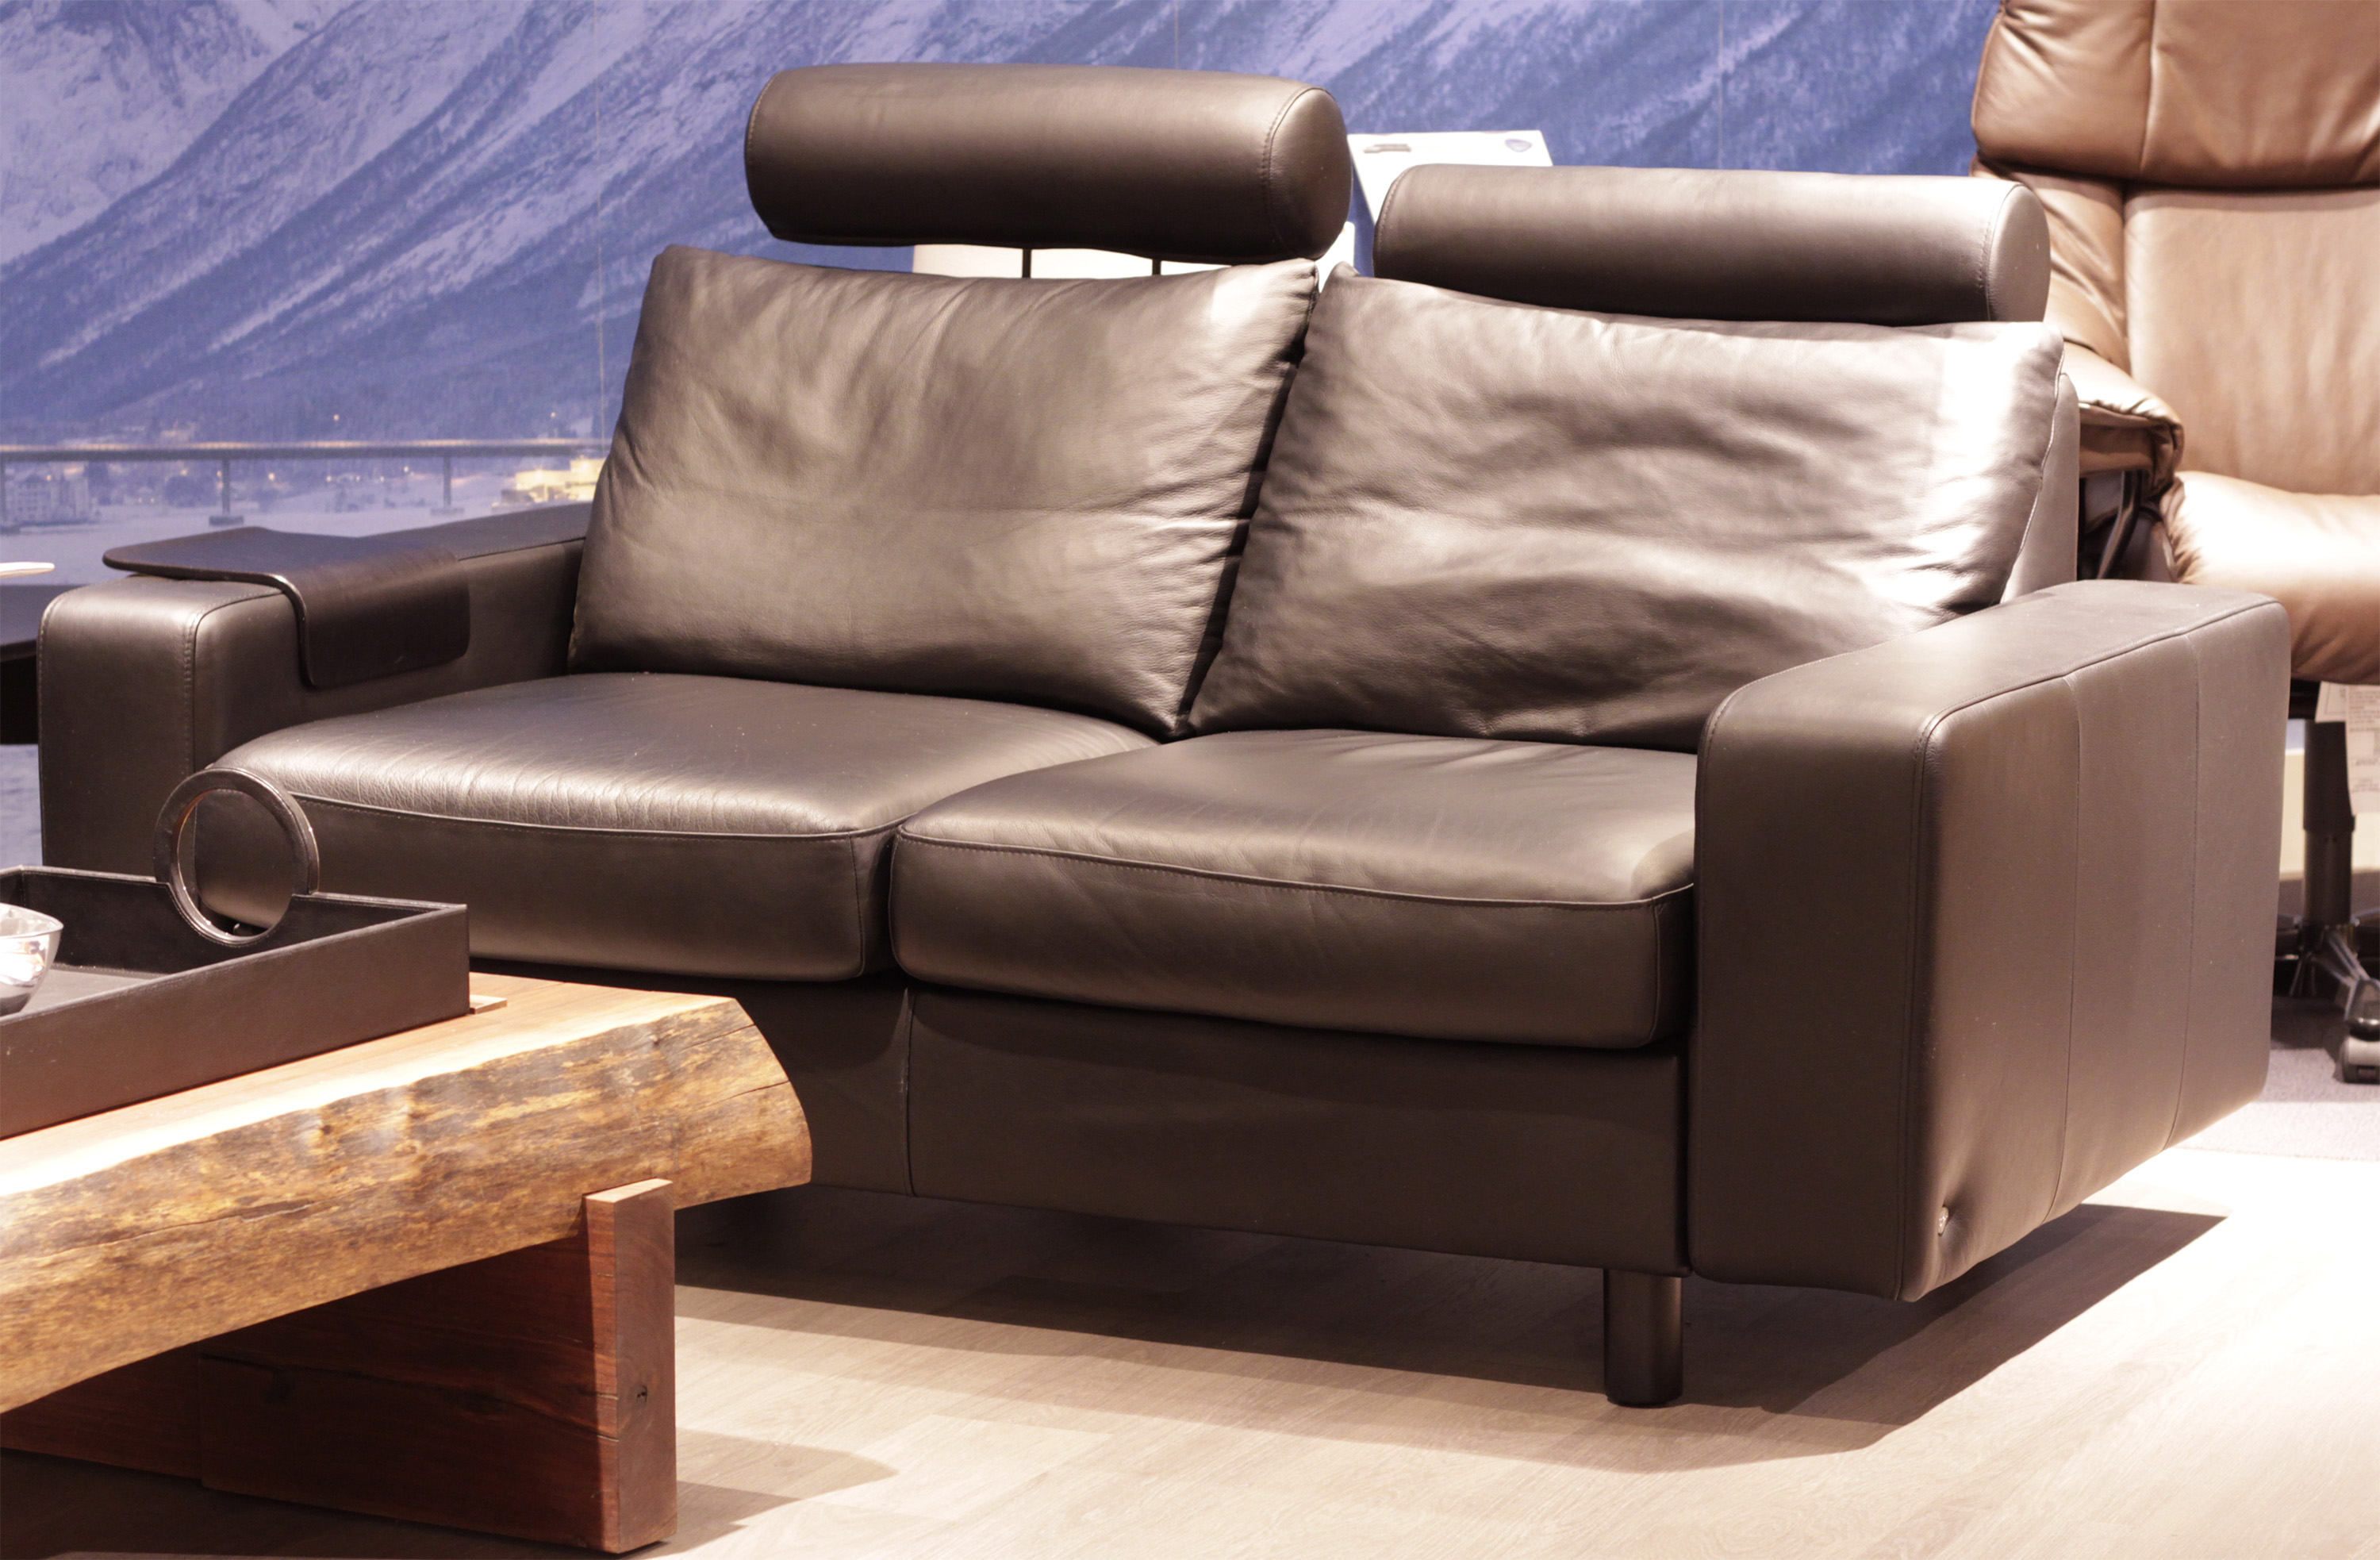 Stressless E200 Loveseat Sofa In Paloma Rock Leather By